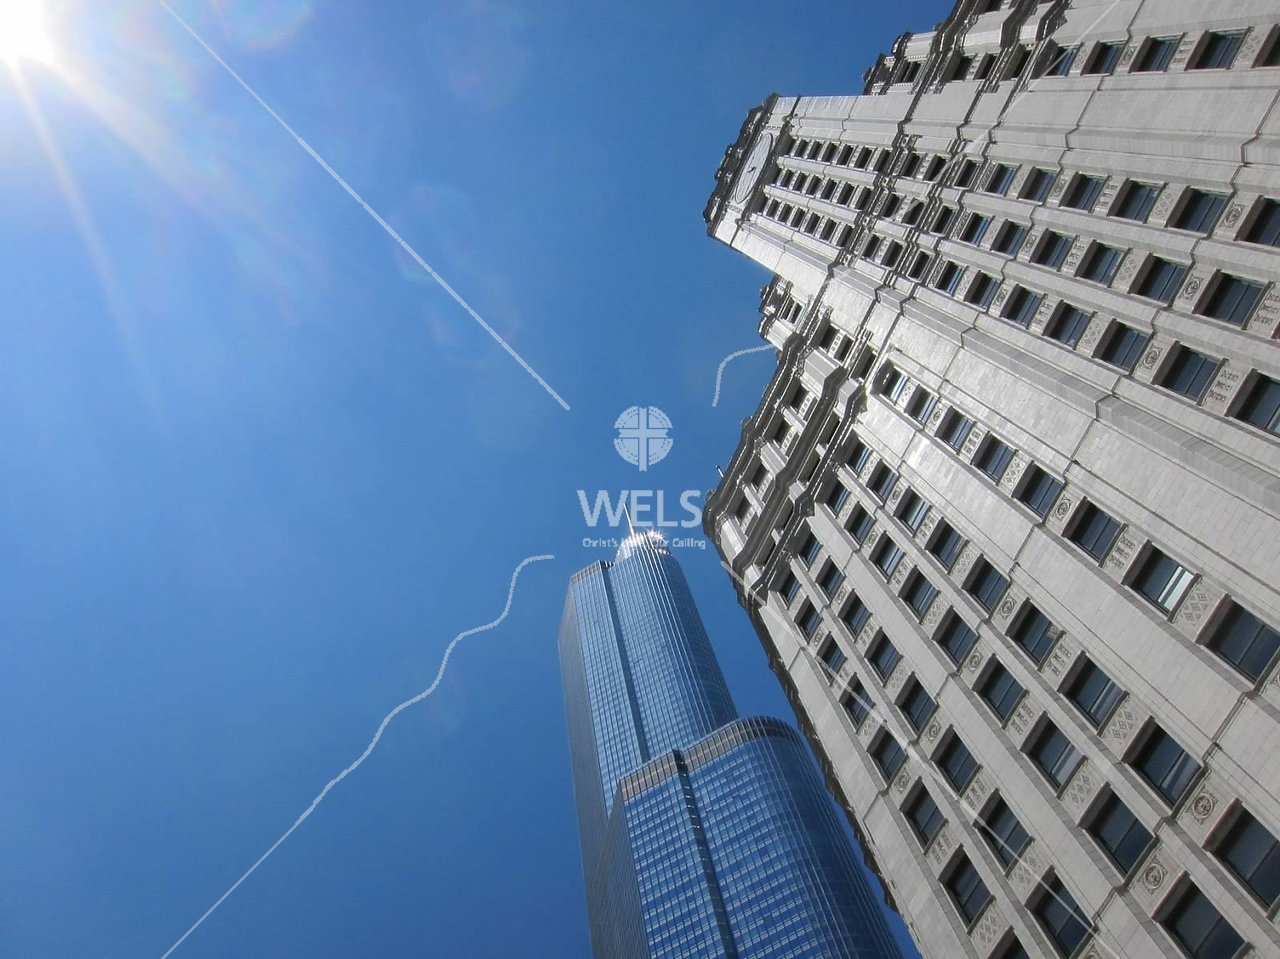 Skyscrapers in Shanghai, China by kstellick